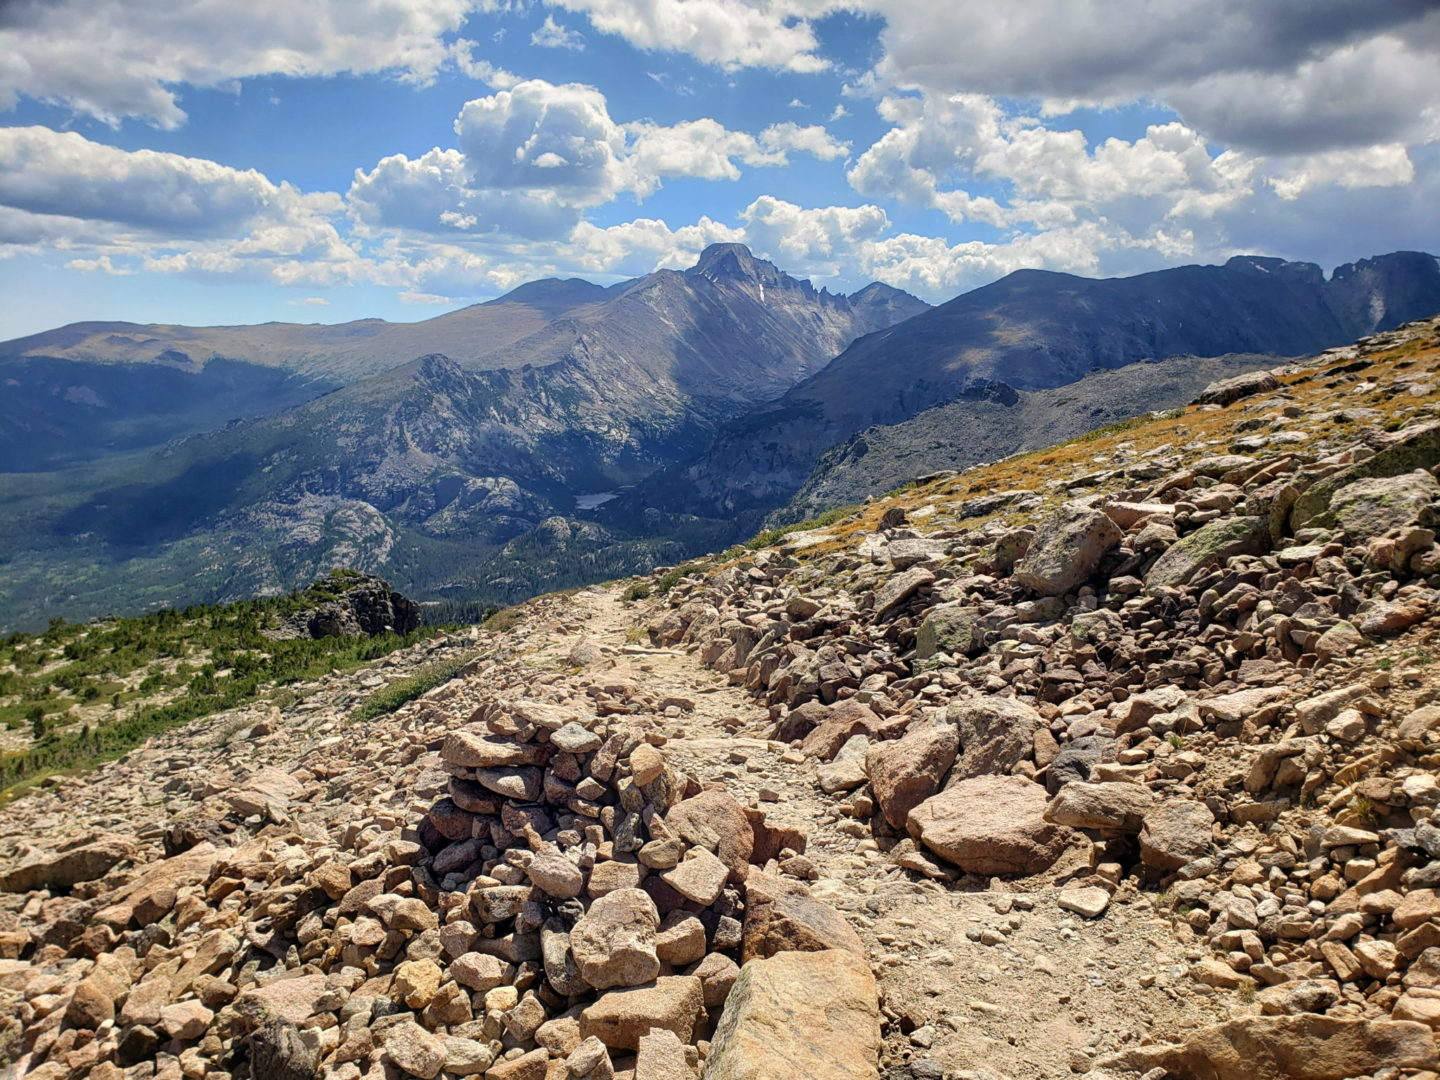 Views along the Flattop Mountain trail